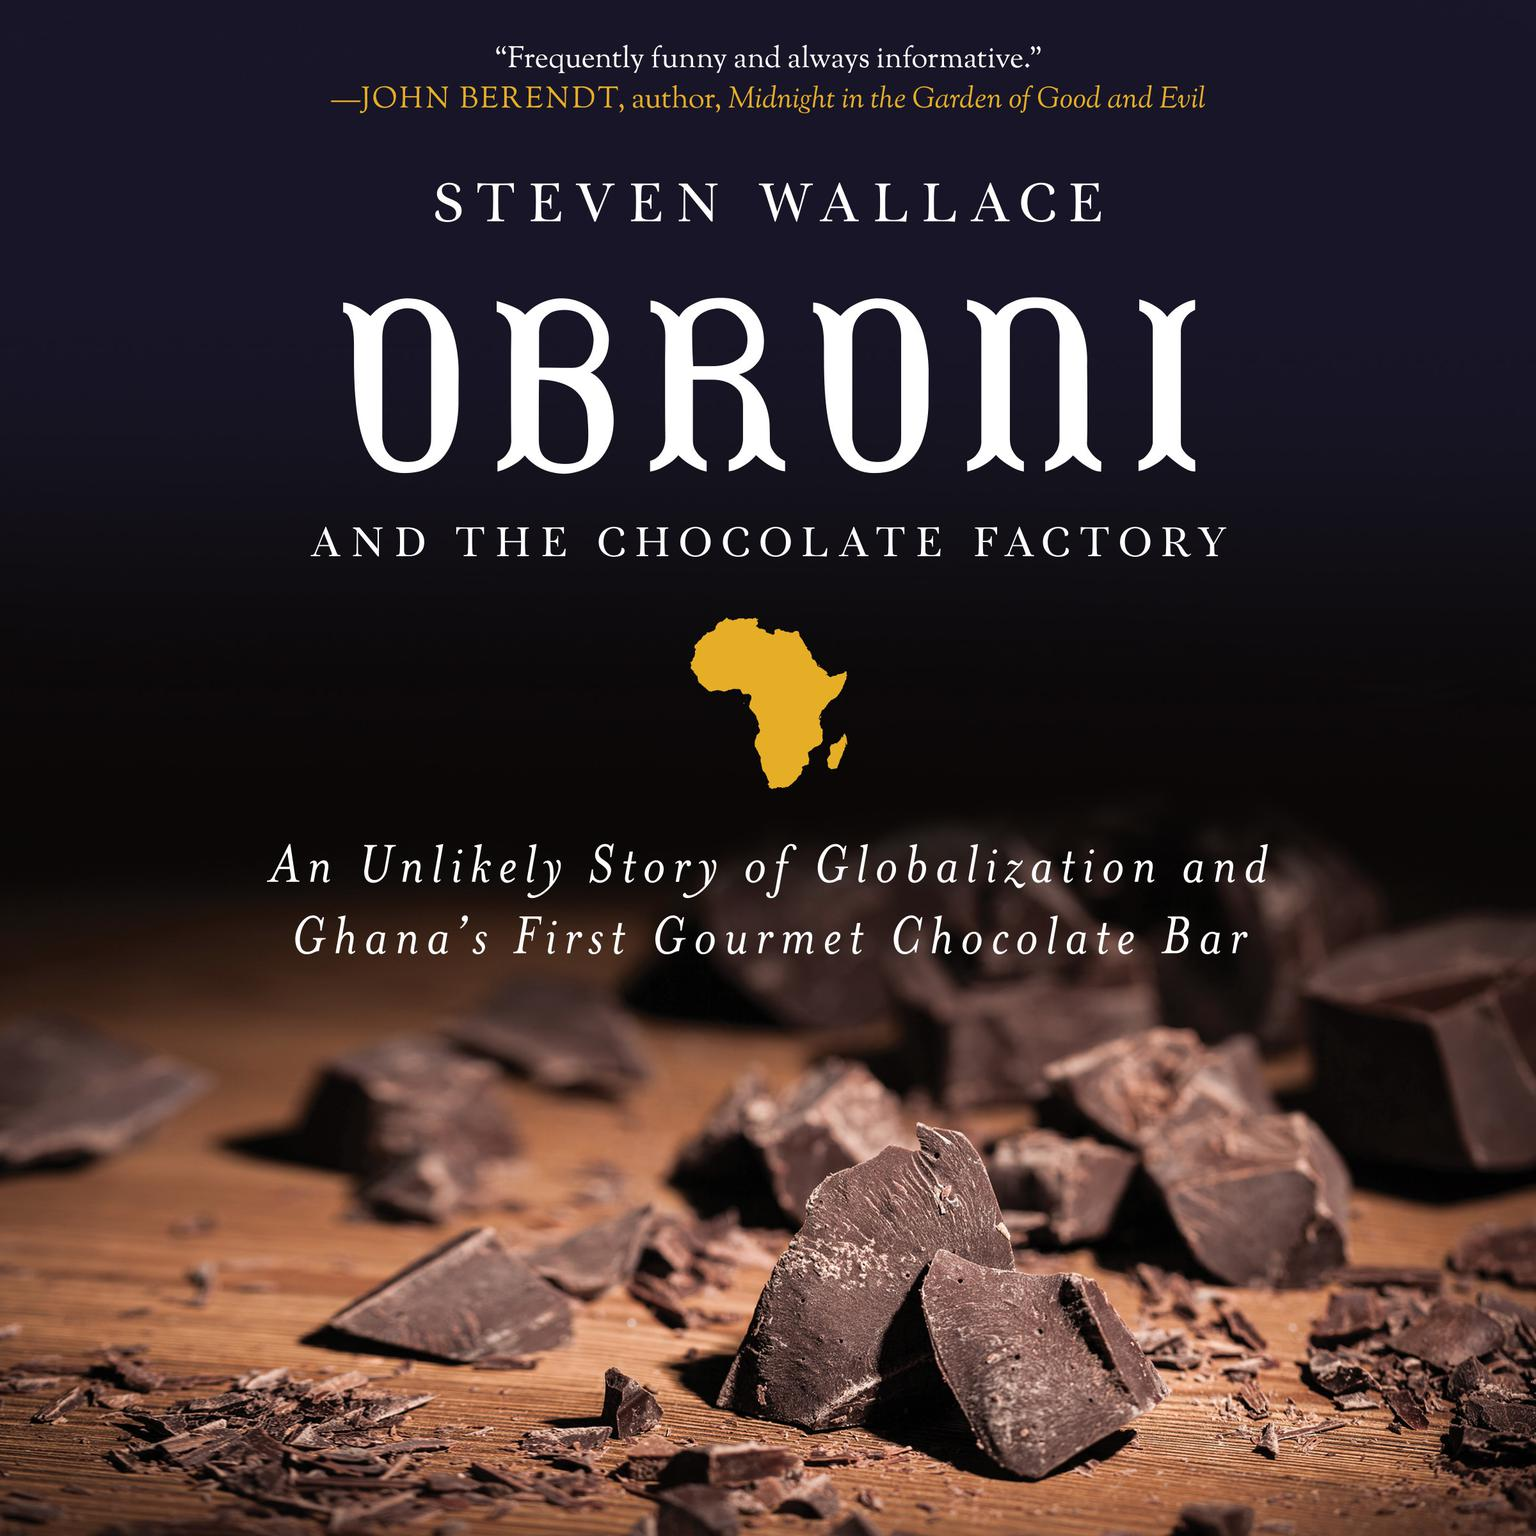 Obroni and the Chocolate Factory: An Unlikely Story of Globalization and Ghanas First Chocolate Bar Audiobook, by Steven Wallace